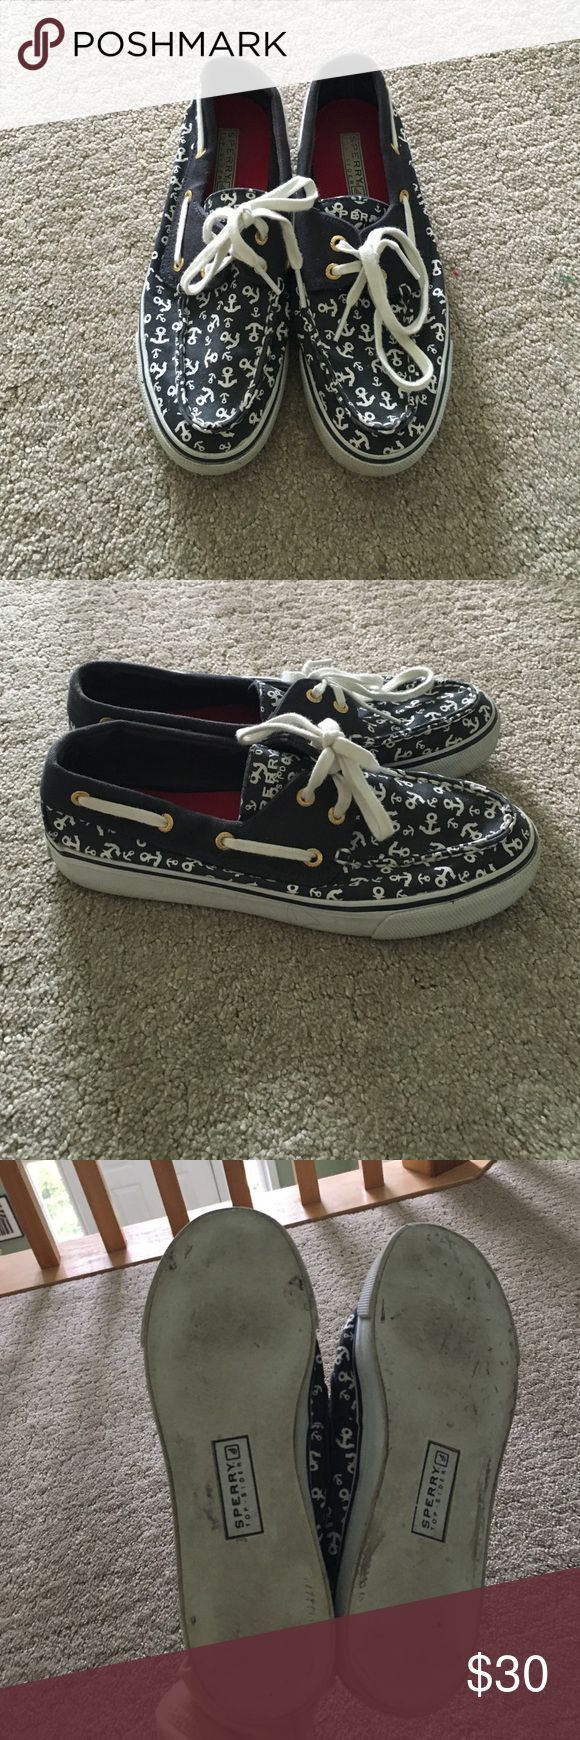 ANCHOR DESIGN SPERRYS Adorable Speerys with anchors all over them. Worn 3-4 times. Super comfortable and perfect for summer!! Sz 6 Sperry Top-Sider Shoes